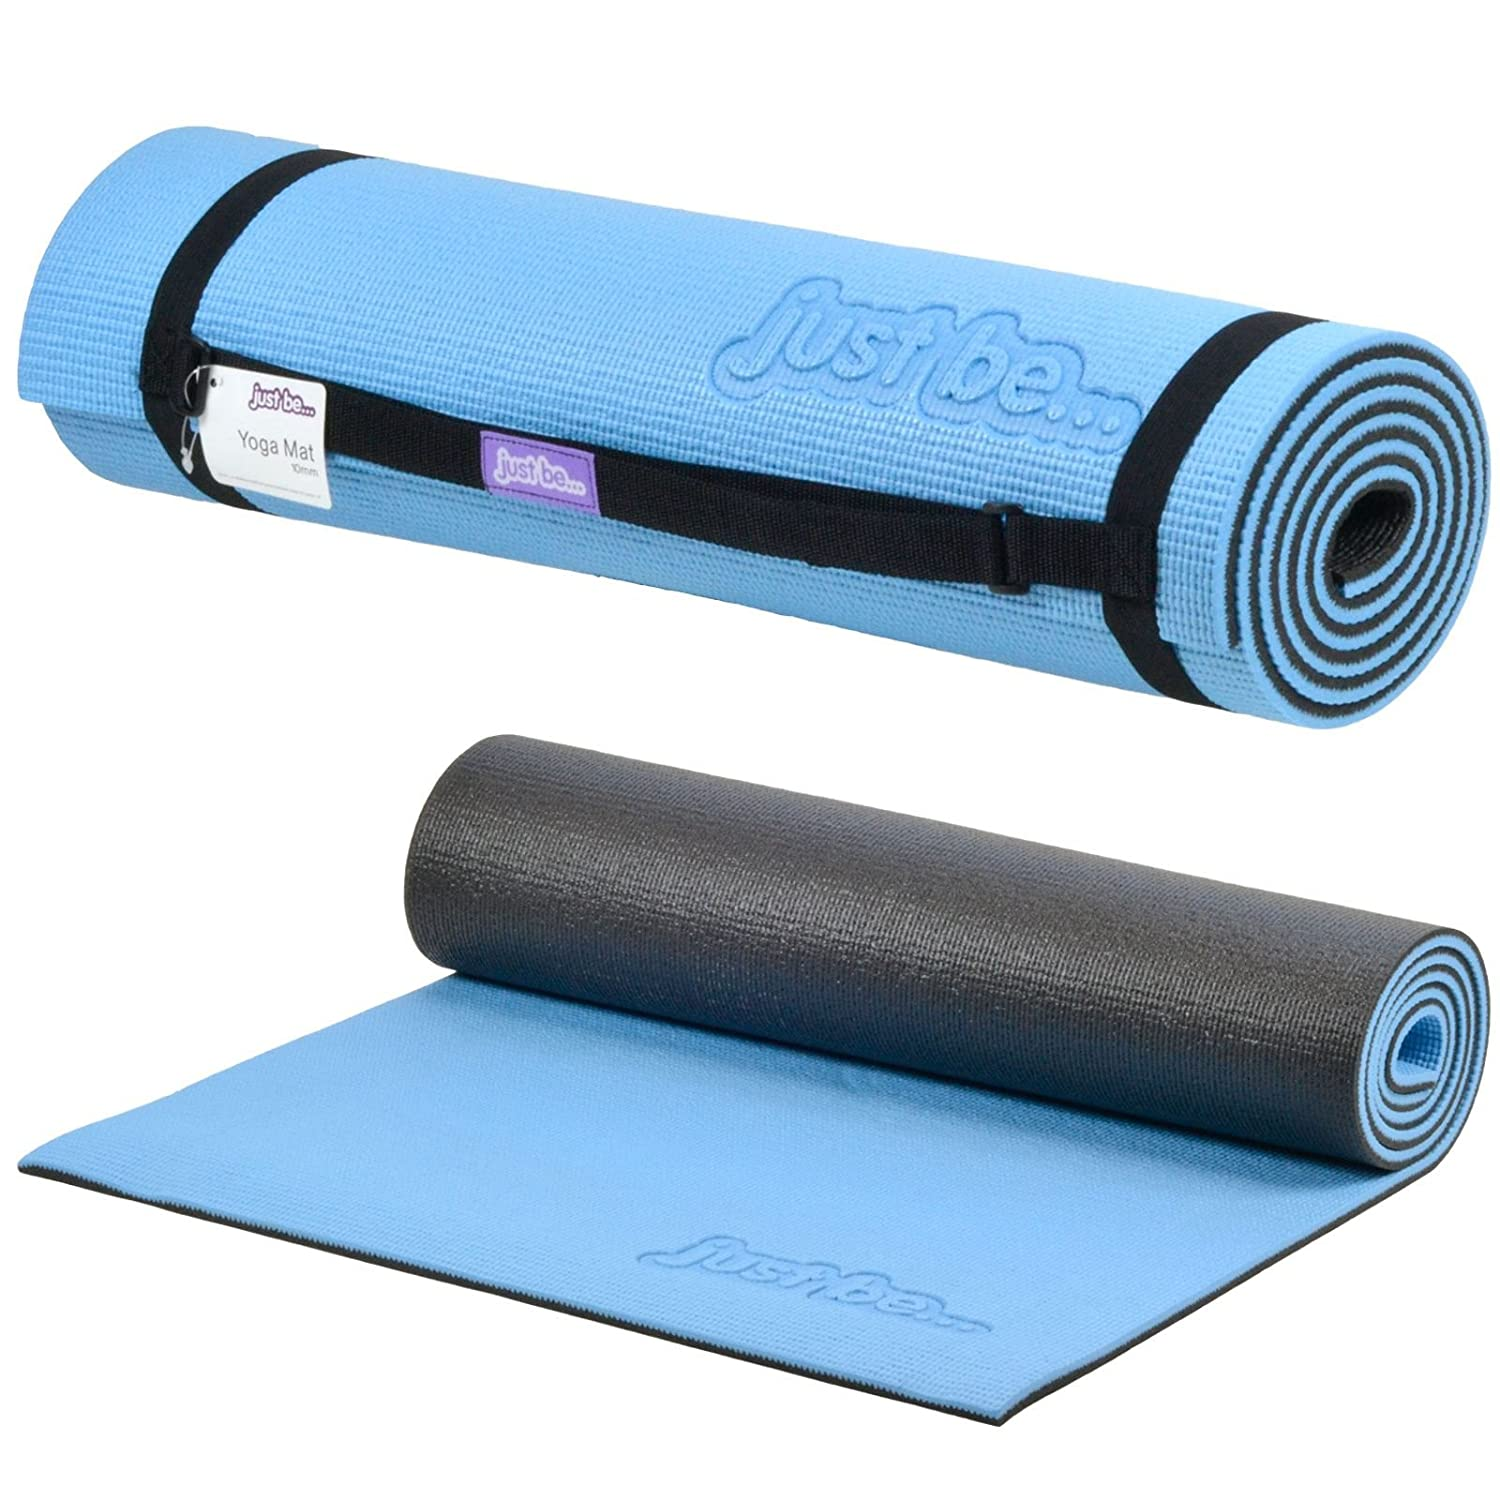 Amazon.com : just be... 180cm x 60cm x 10mm 2-Tone Yoga ...